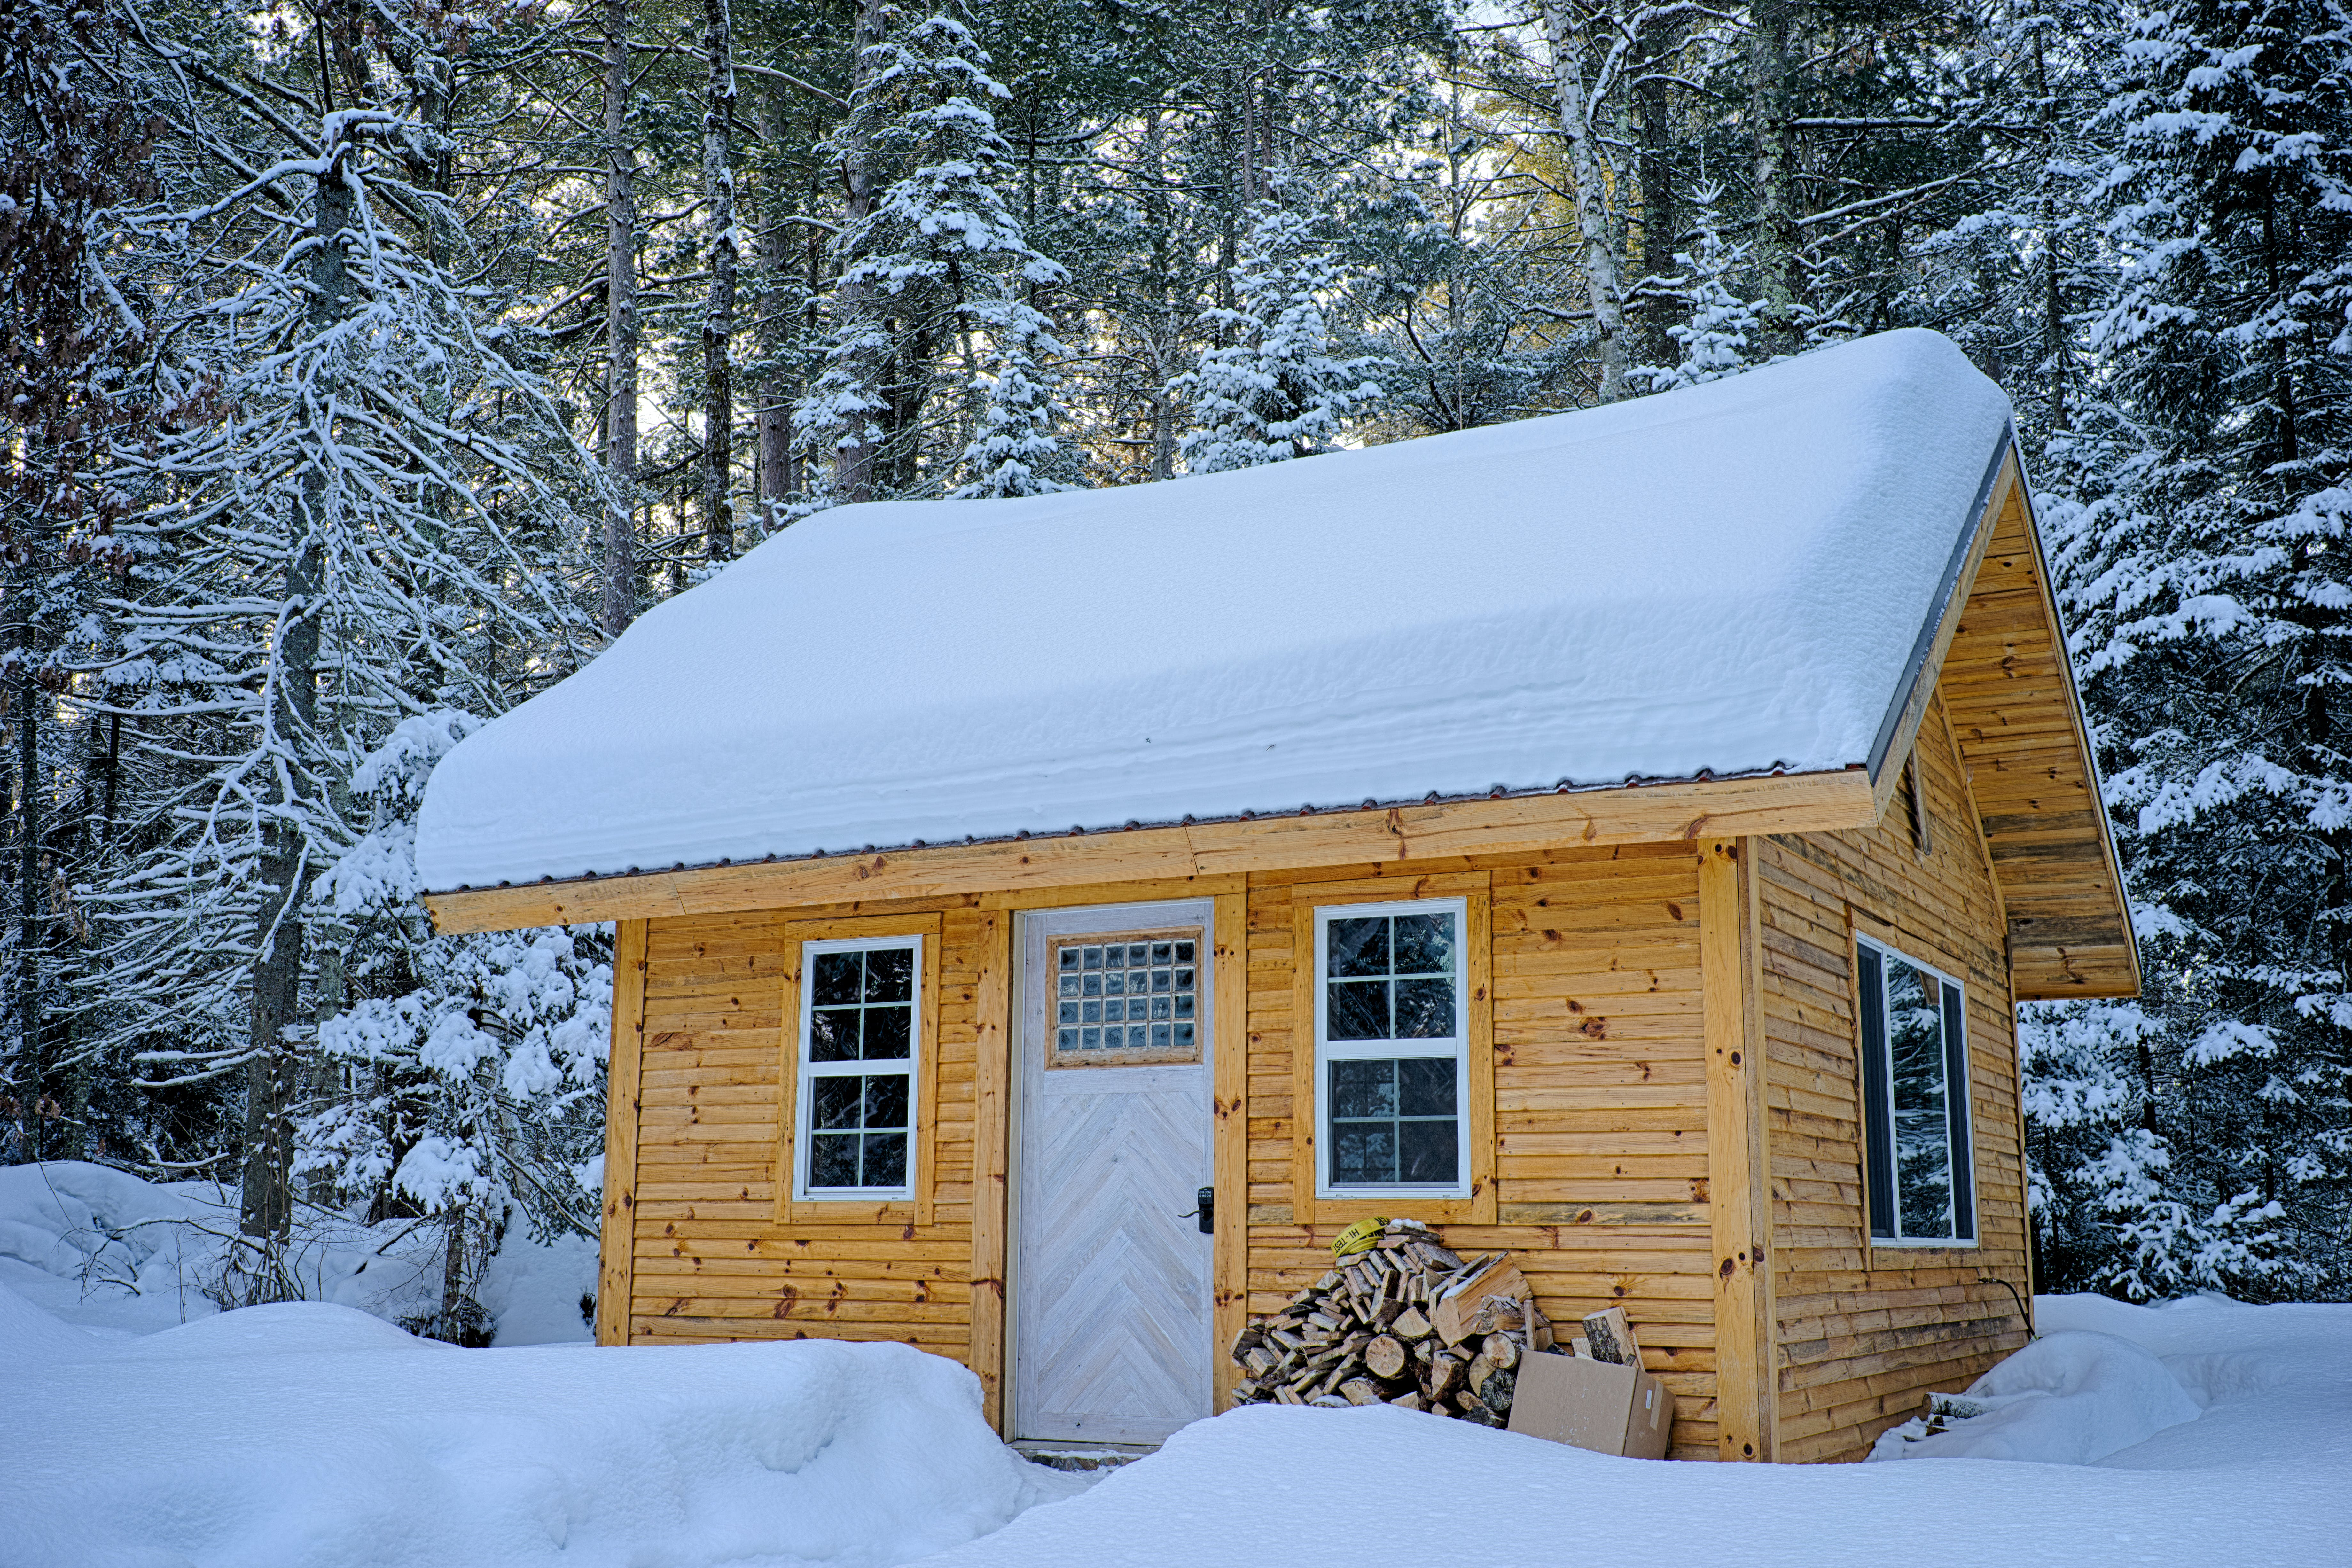 Snow Covered Wooden House Inside Forest